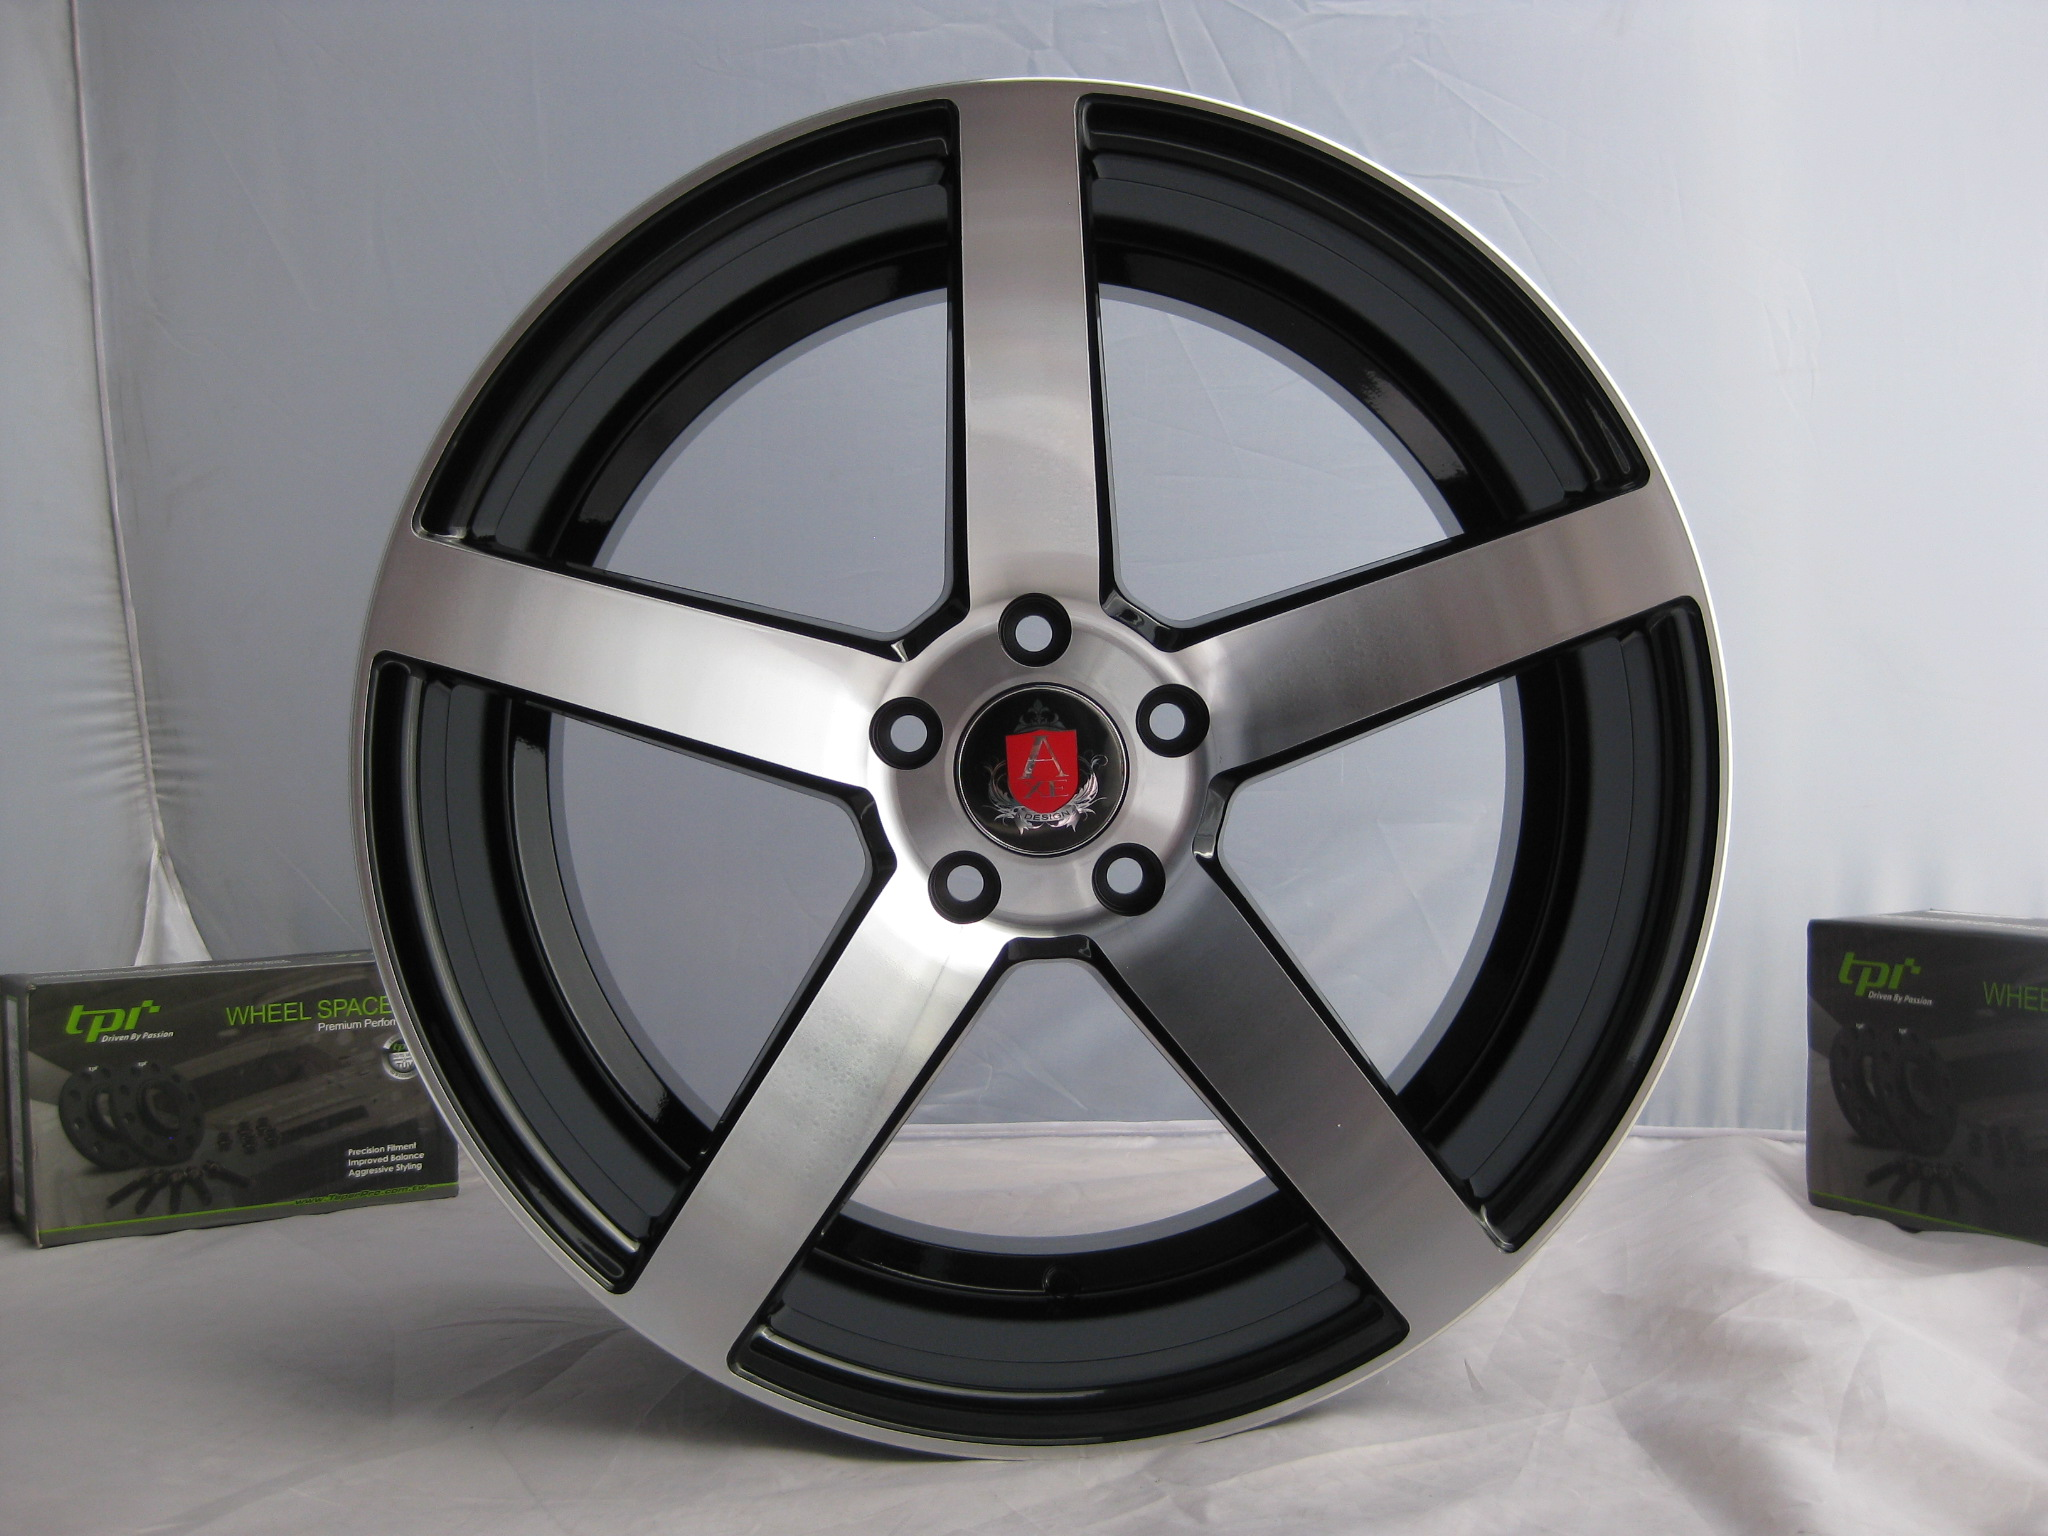 "NEW 20"" AXE EX18 DEEP CONCAVE ALLOY WHEELS IN GLOSS BLACK WITH POLISHED FACE, DEEP DISH, WIDER 10.5"" REAR 38/42"